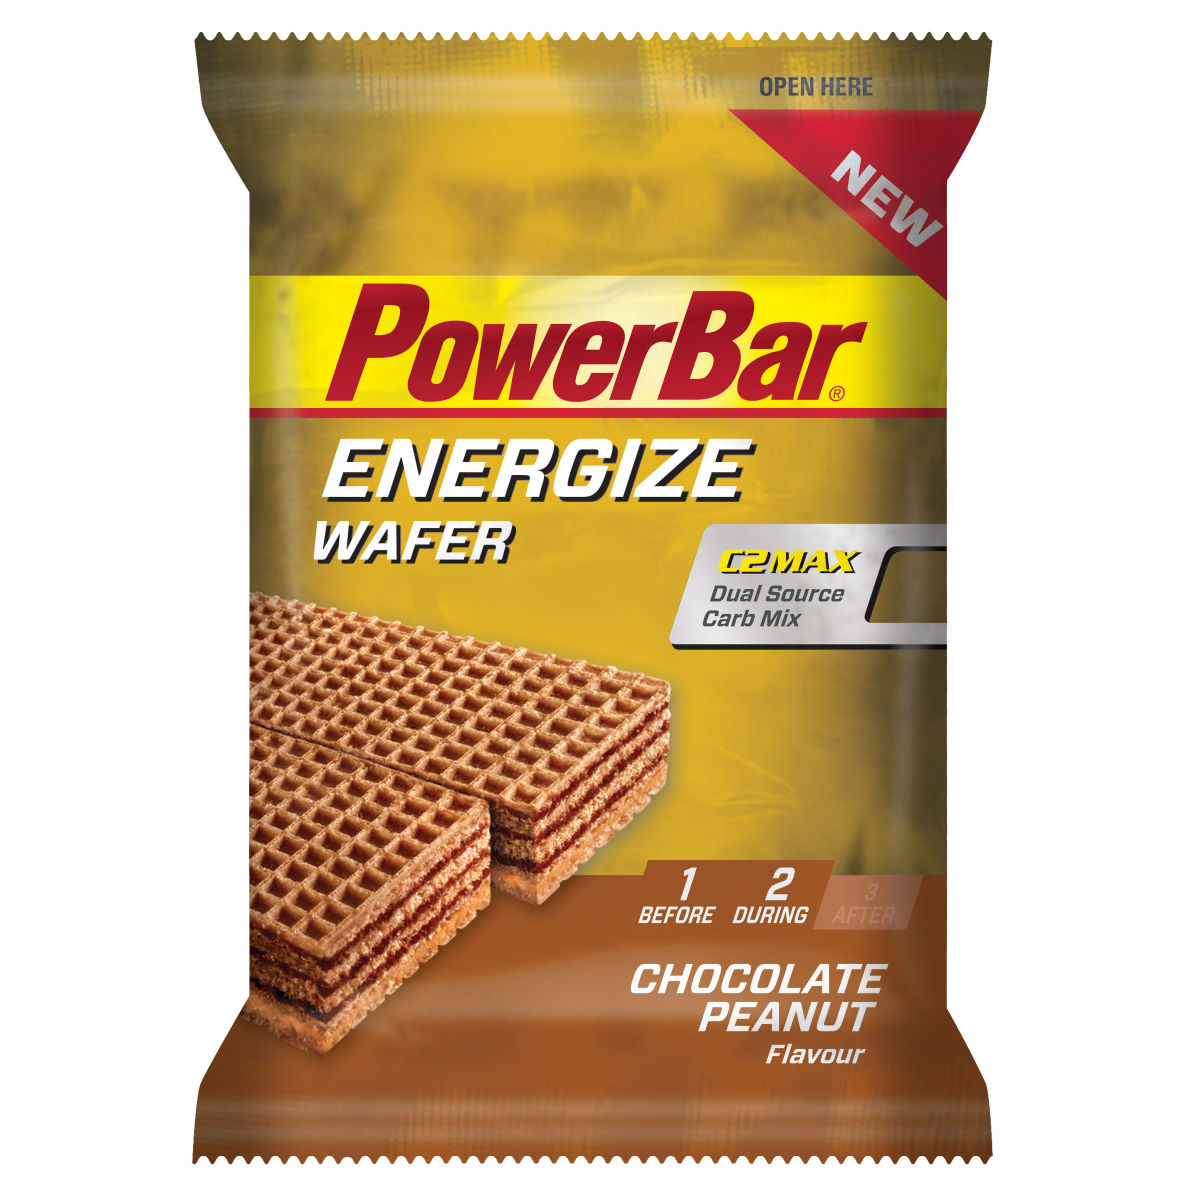 PowerBar Energize Wafer Bar (12 x 40g)